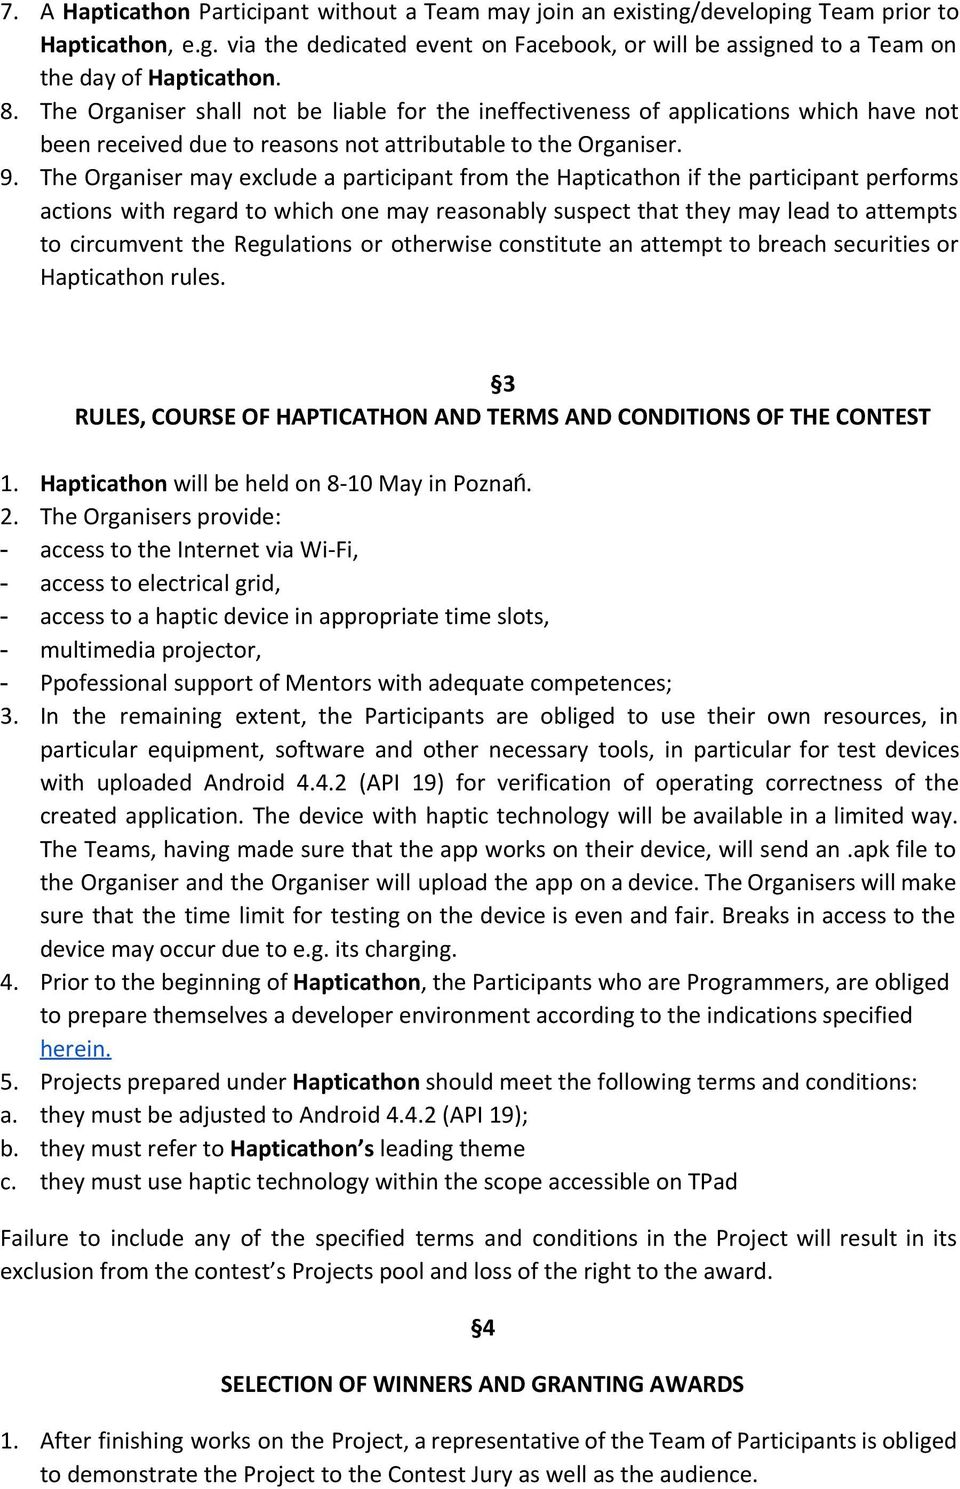 The Organiser may exclude a participant from the Hapticathon if the participant performs actions with regard to which one may reasonably suspect that they may lead to attempts to circumvent the